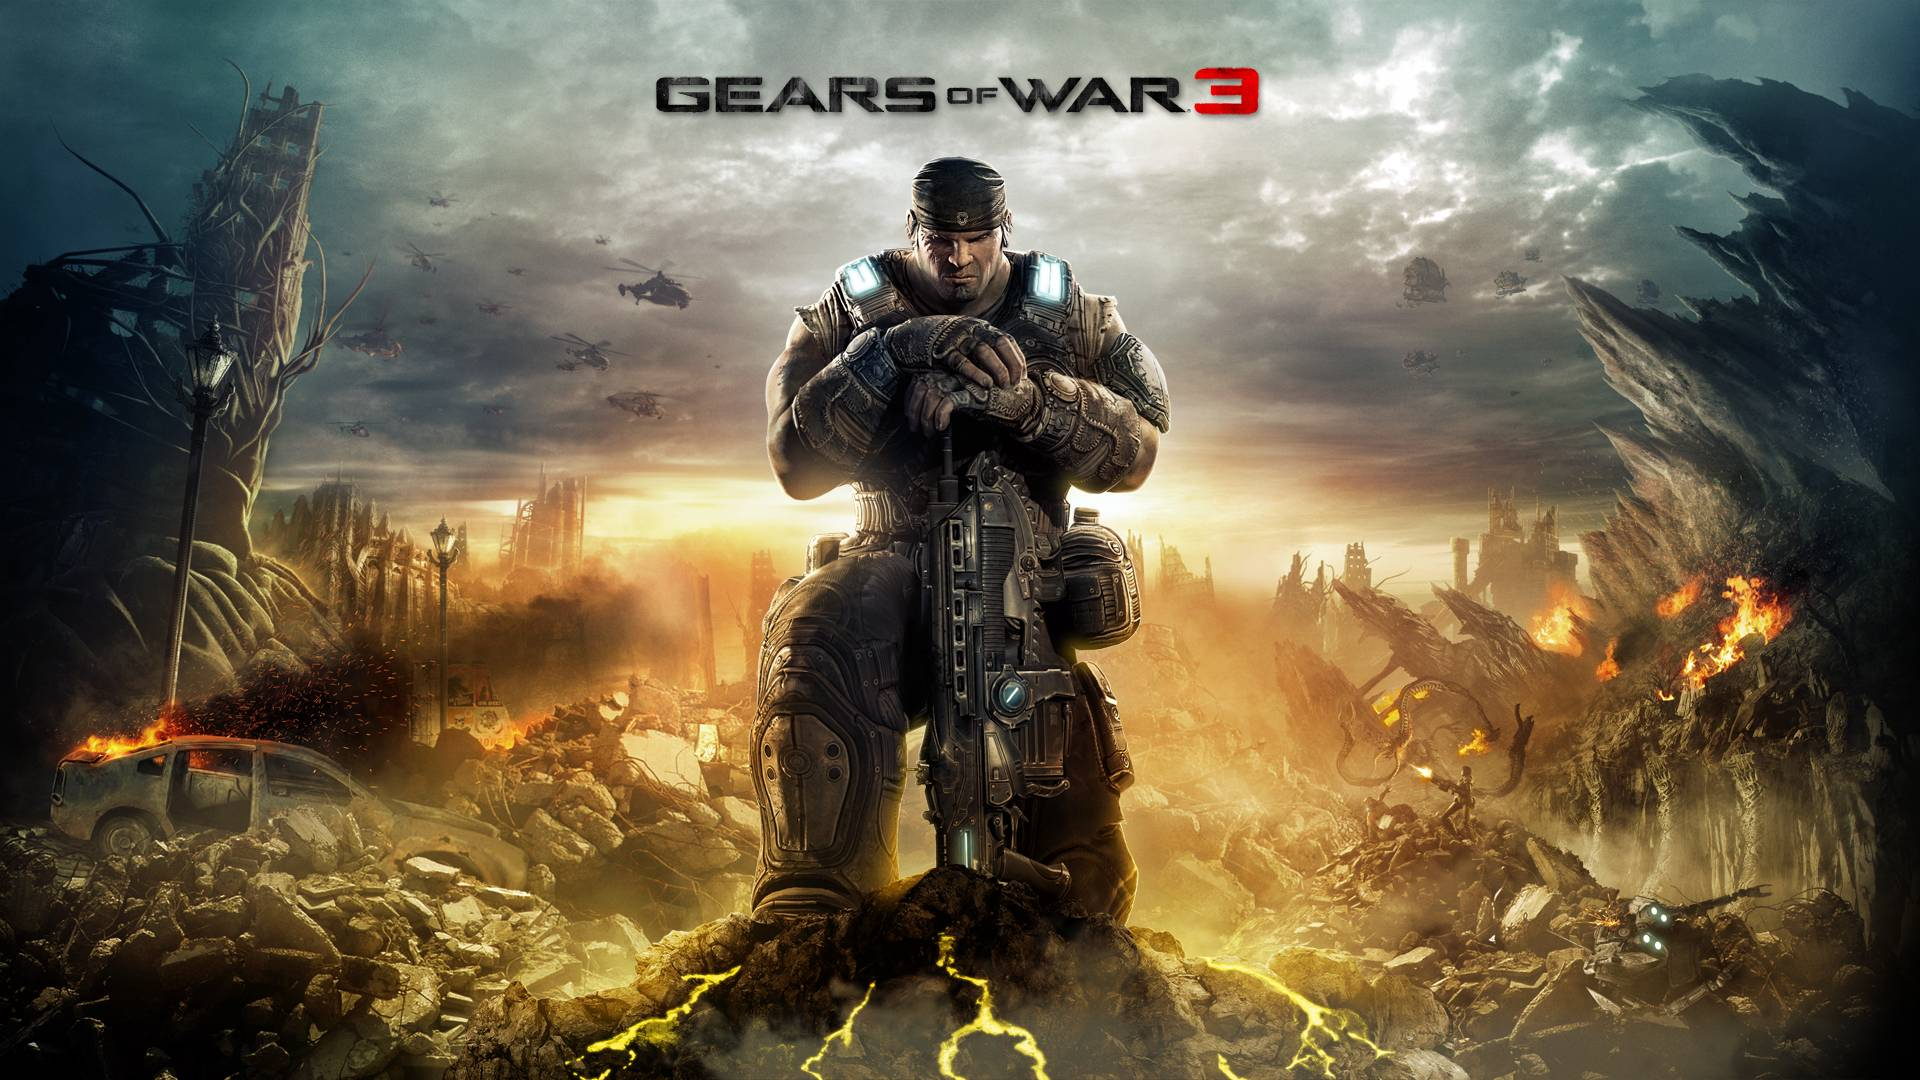 gears of war 3 wallpapers hd - wallpaper cave